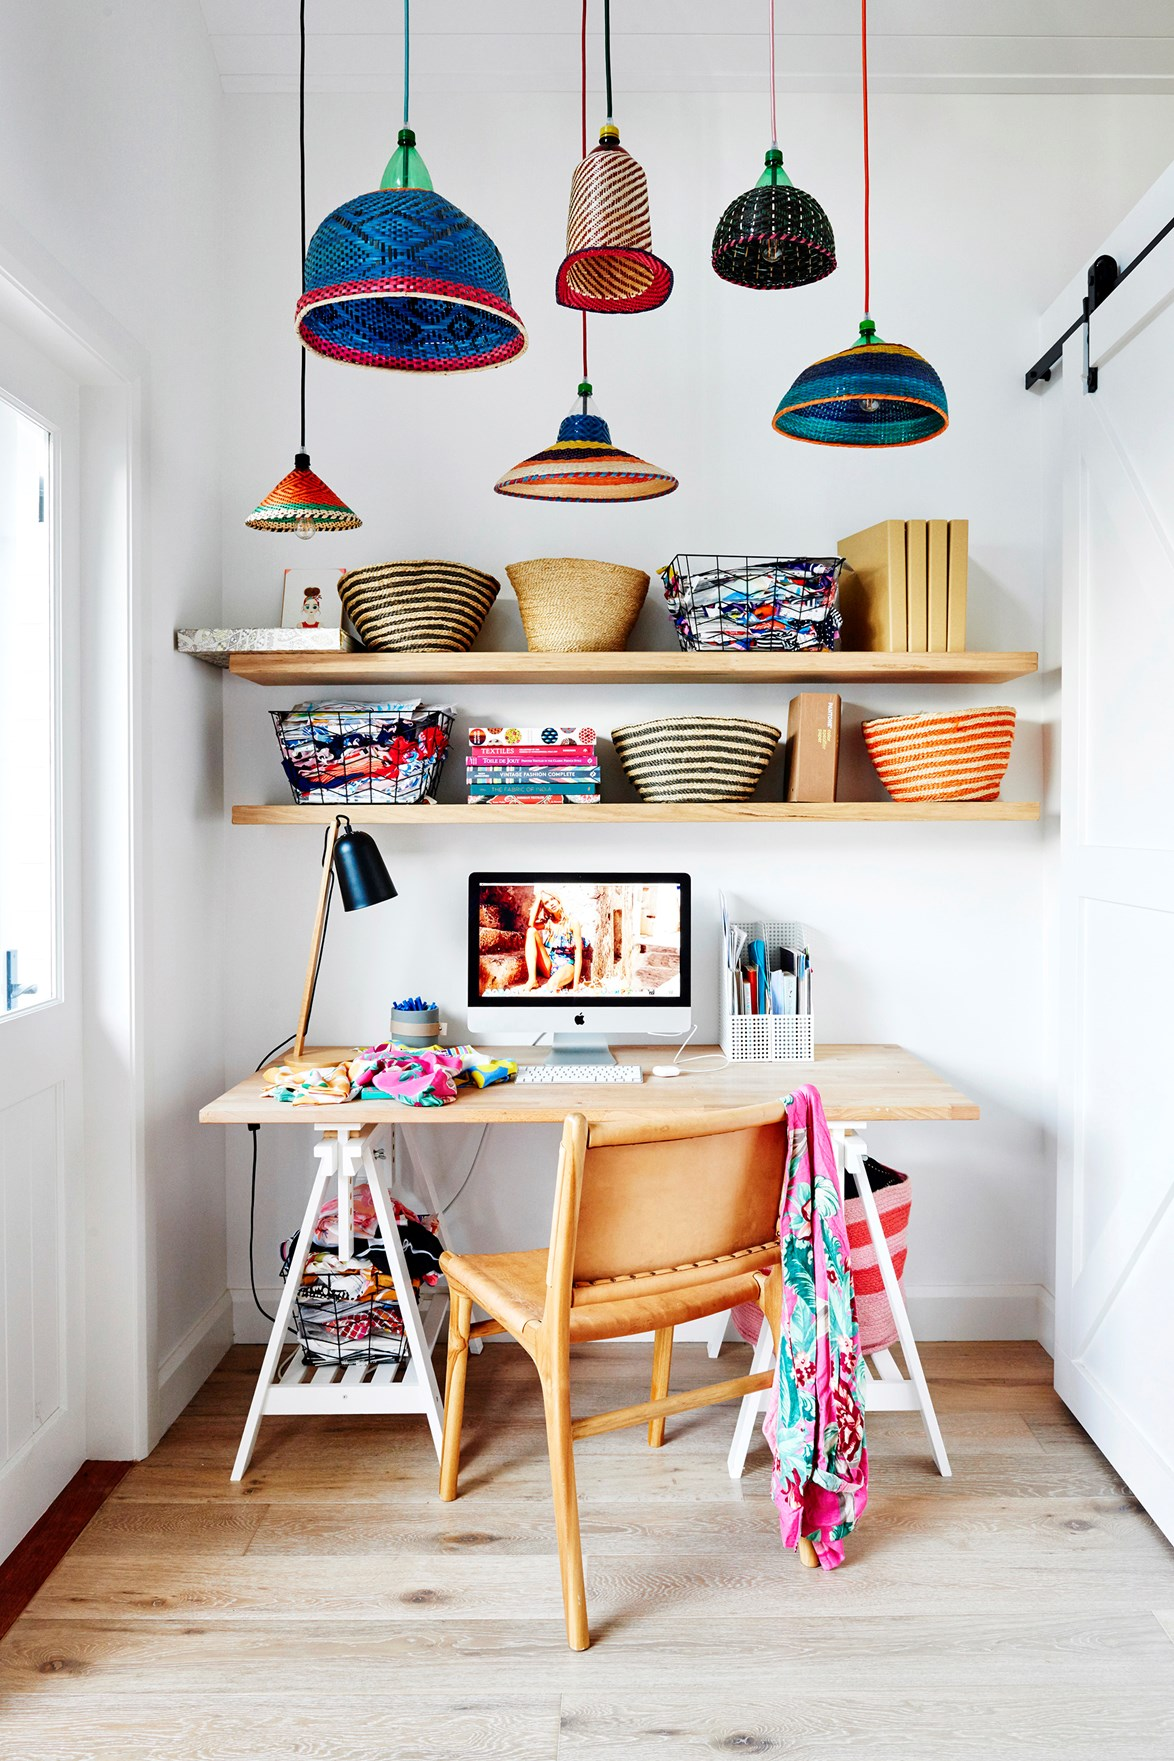 Assorted PET lamps from Safari Living make a style statement in this colourful home office.